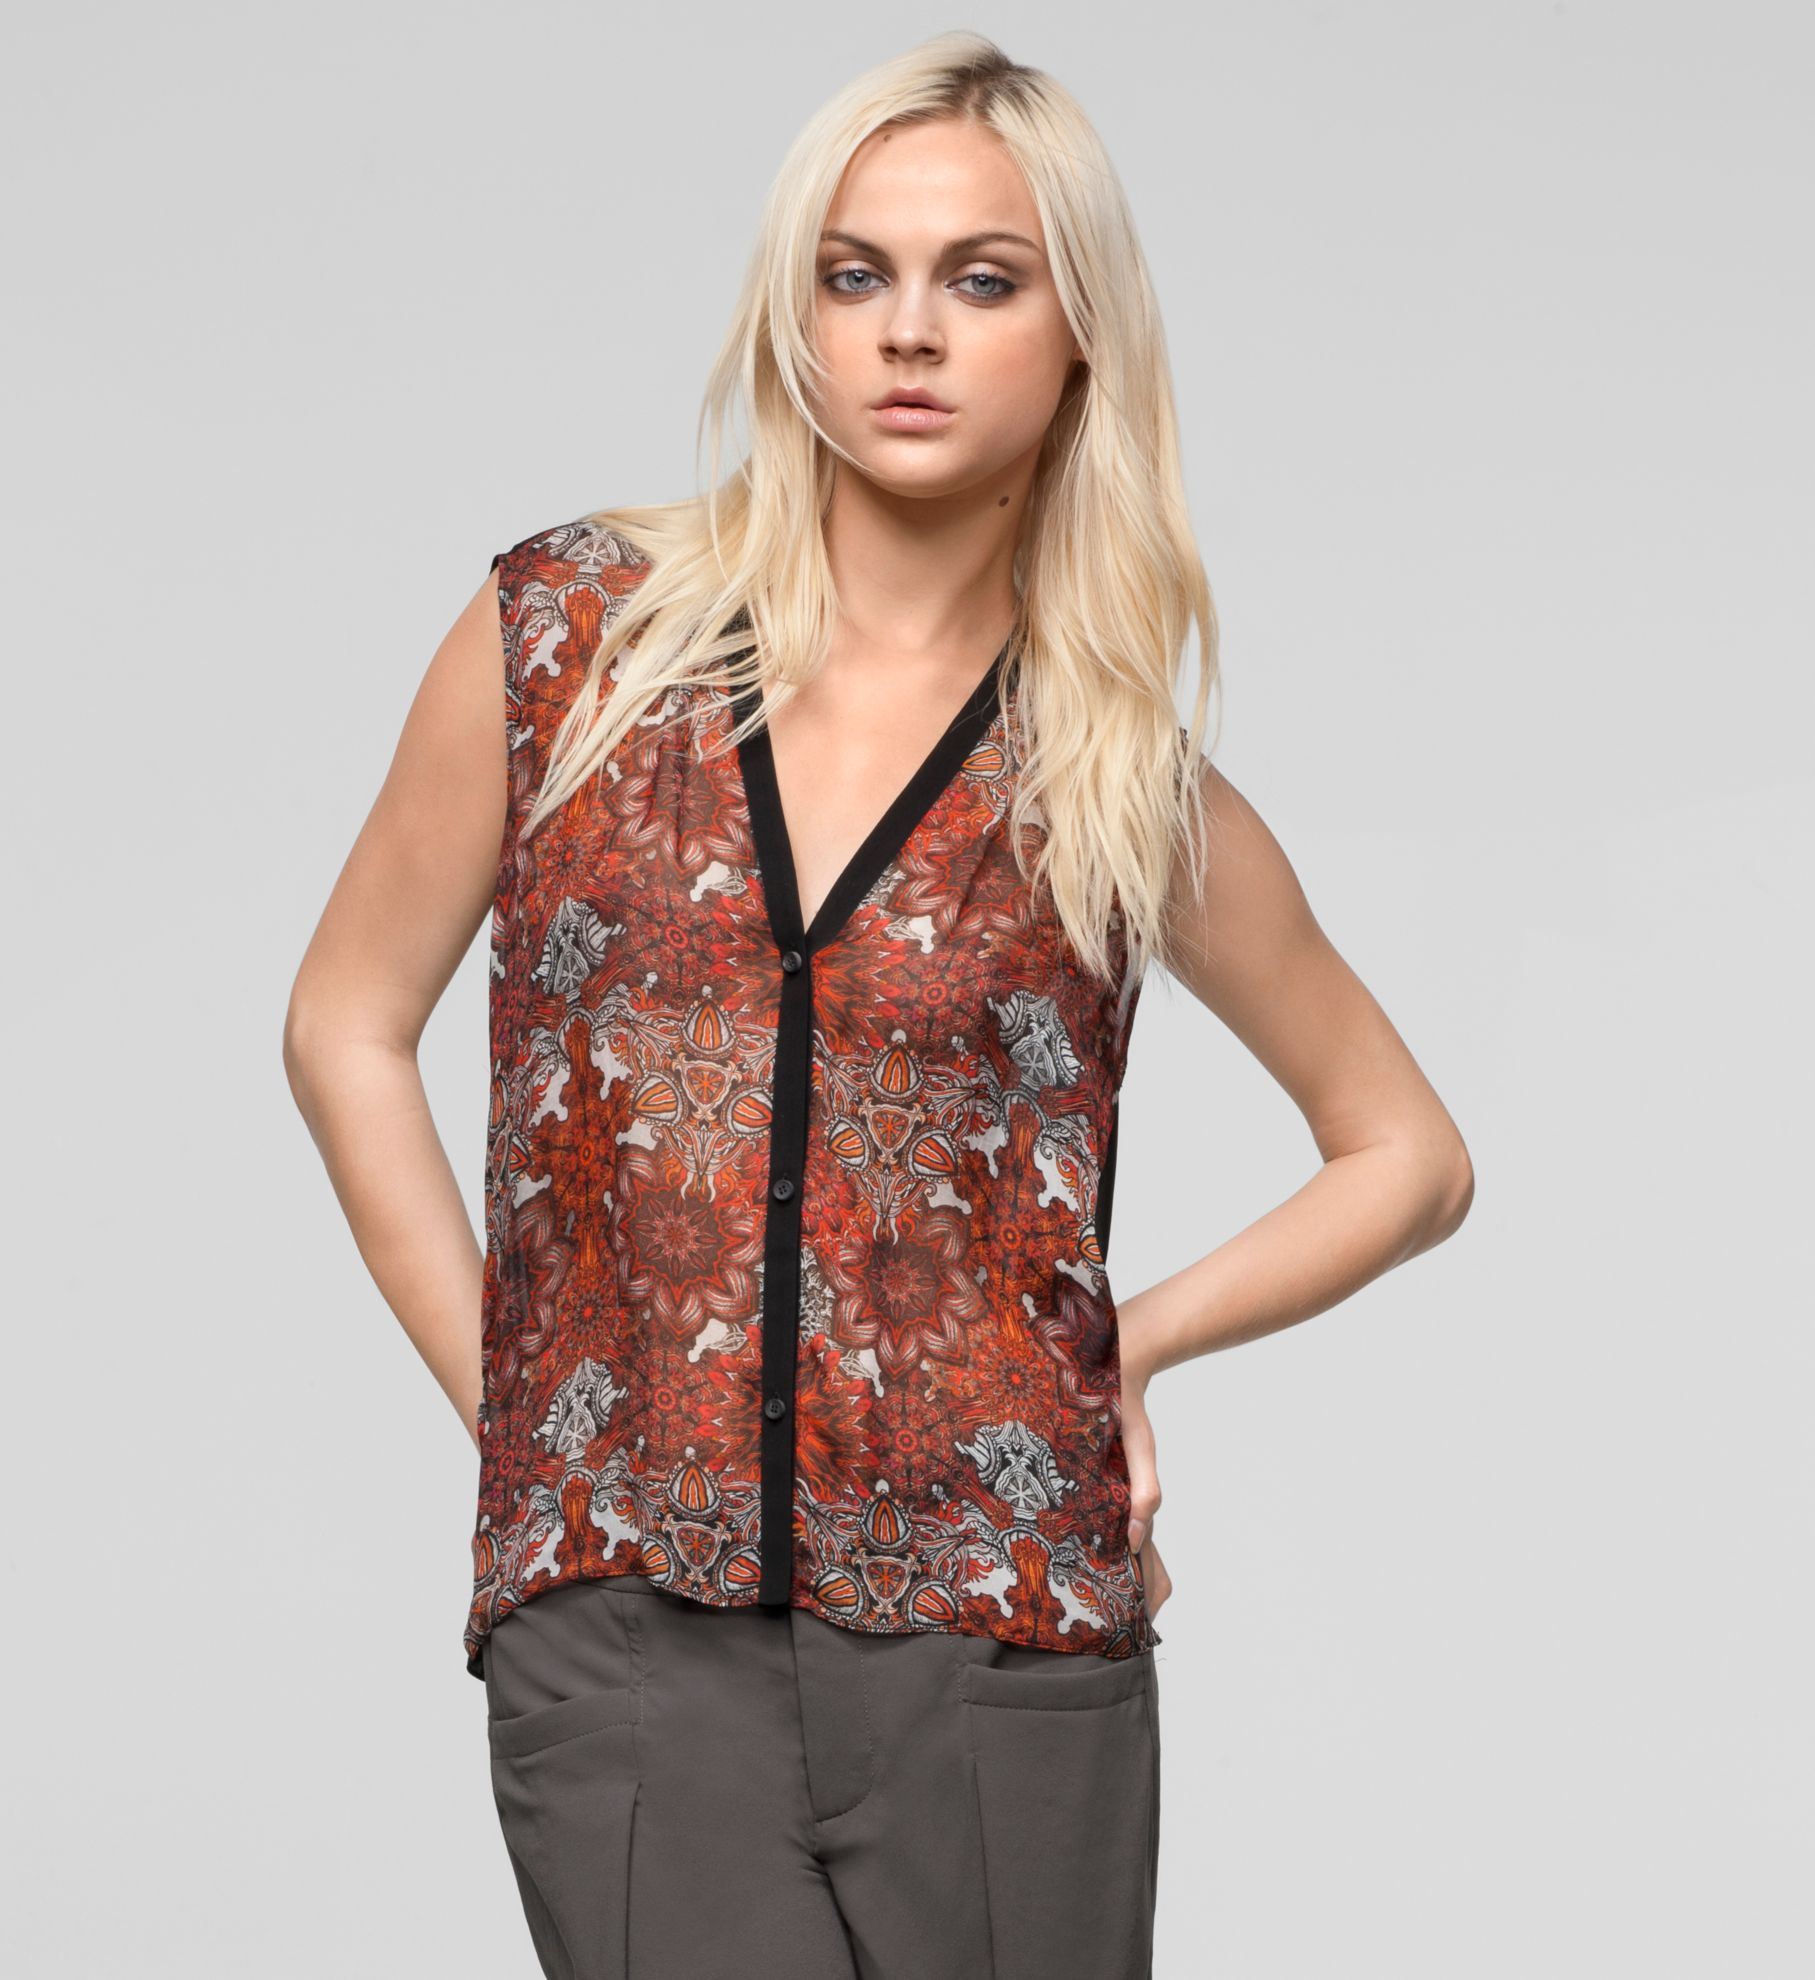 MANDALA VISCOSE PRINT TOP